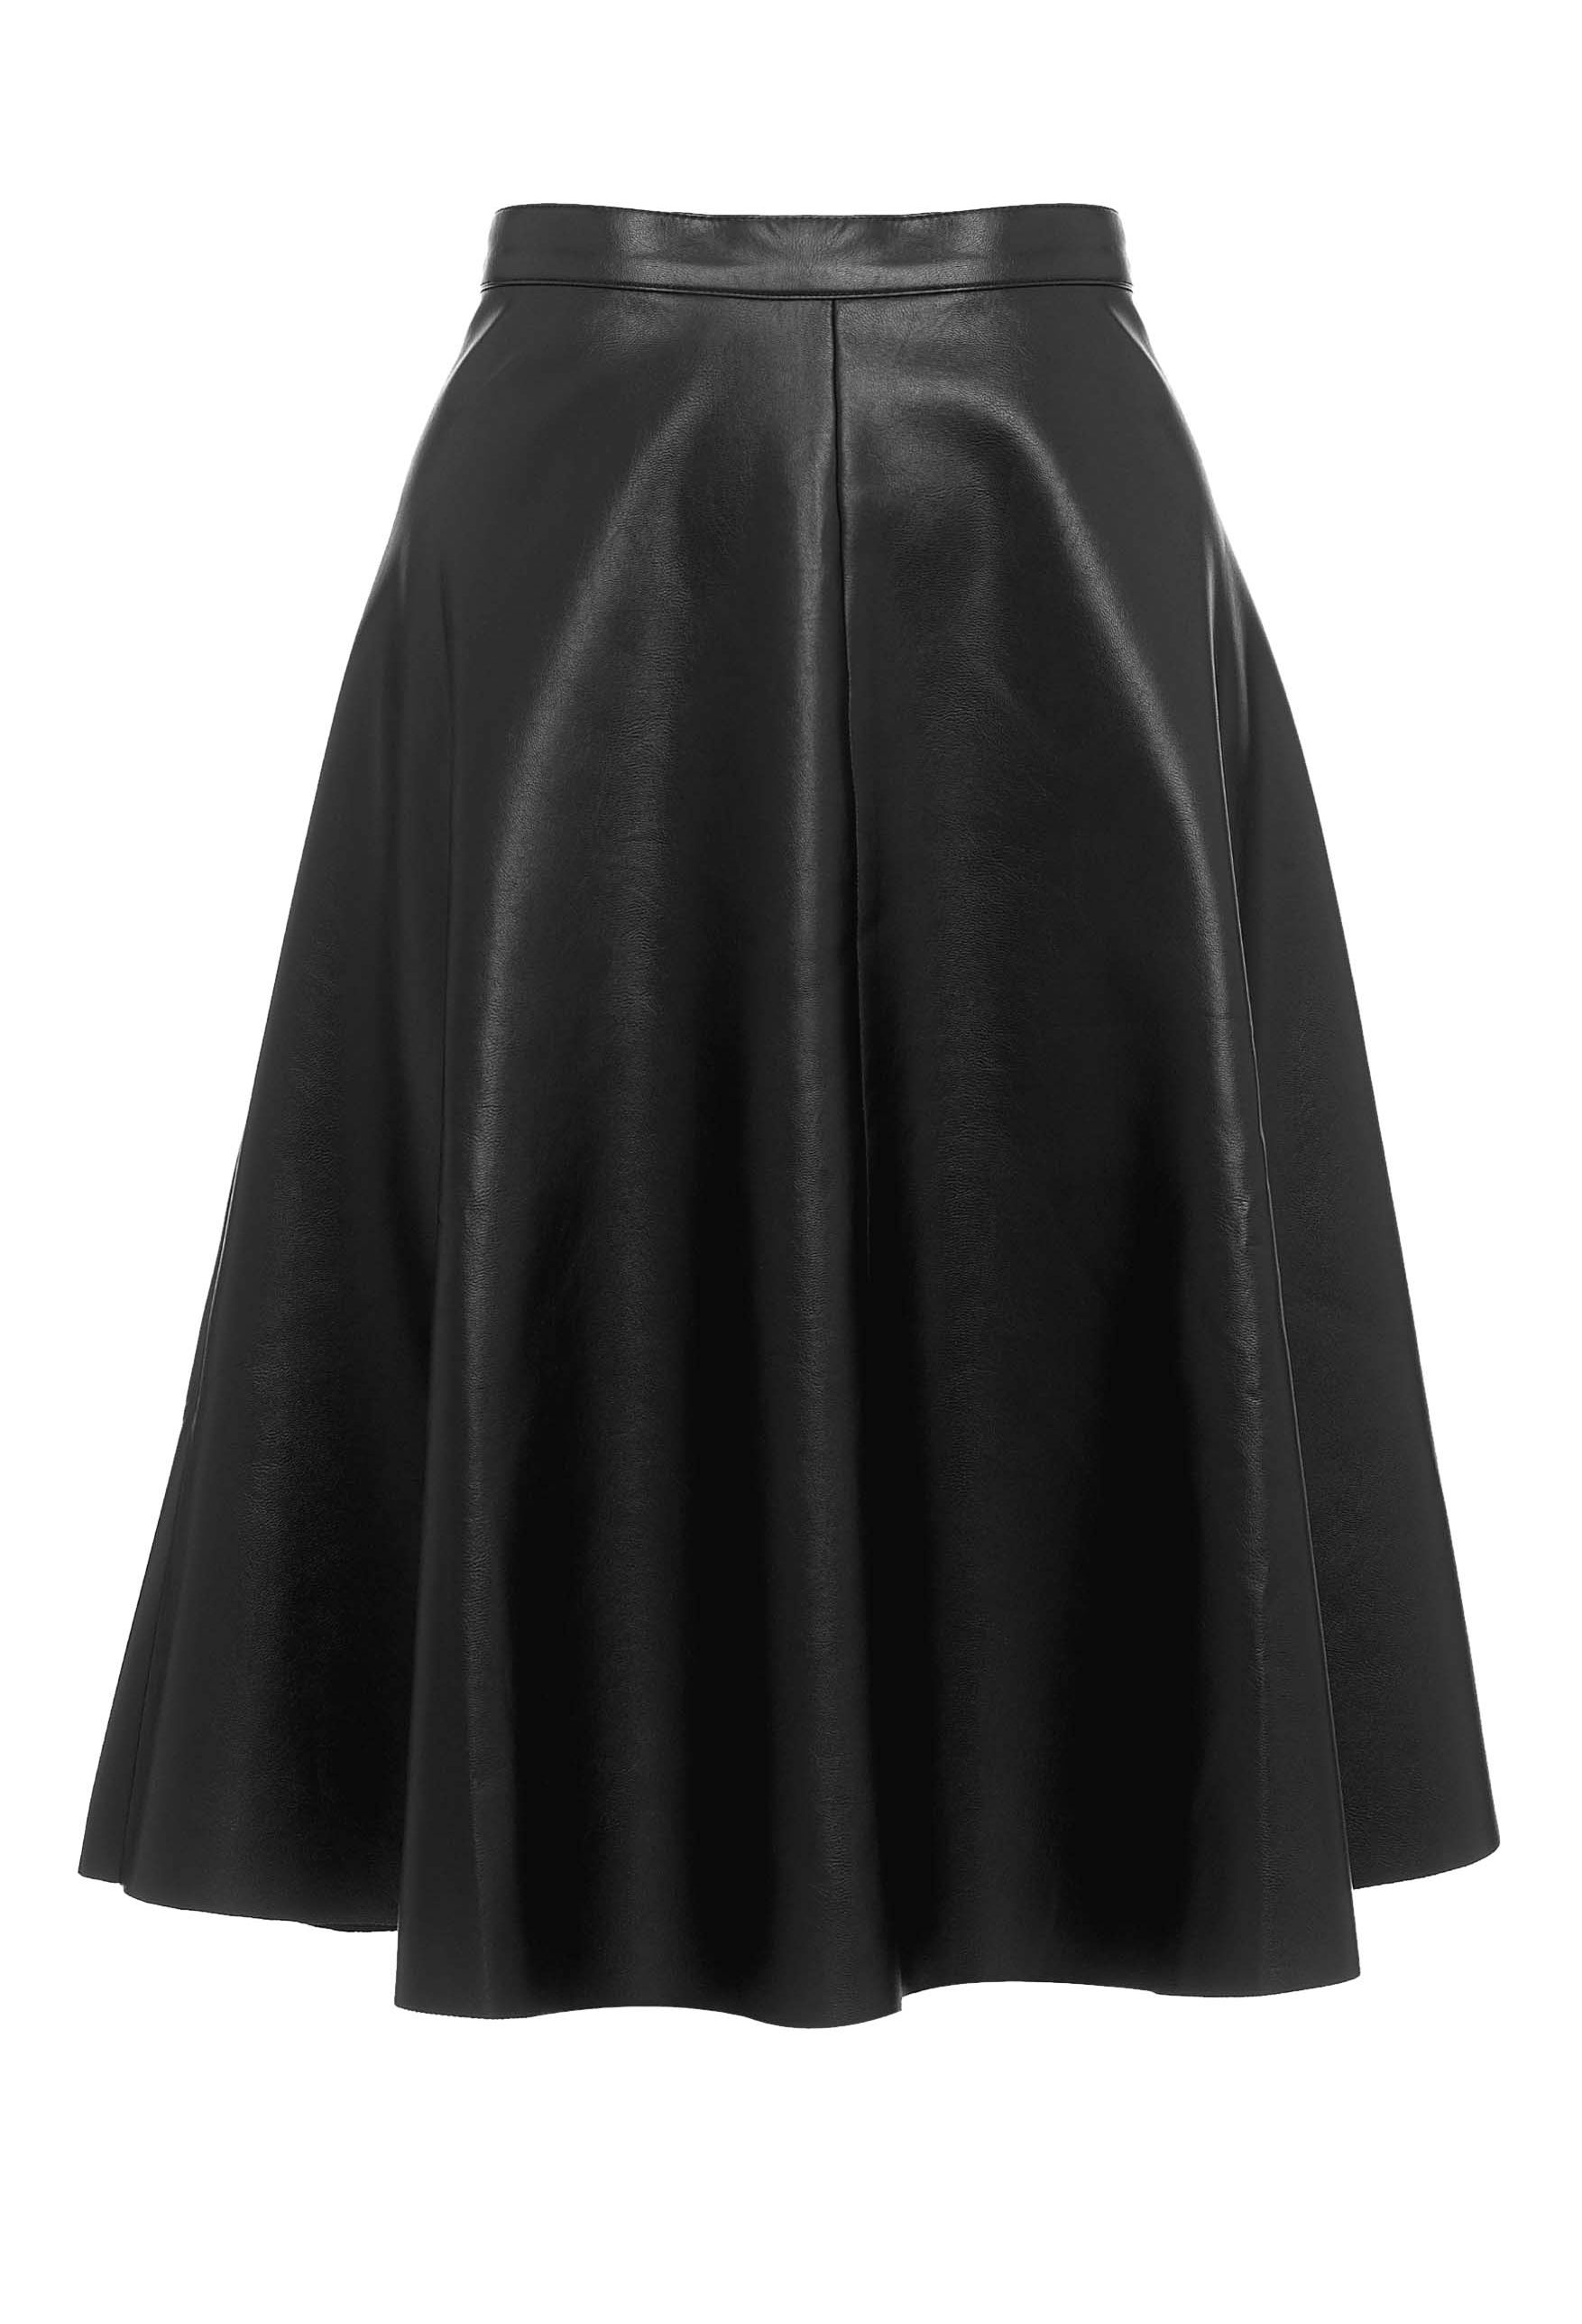 Katia longer skater skirt